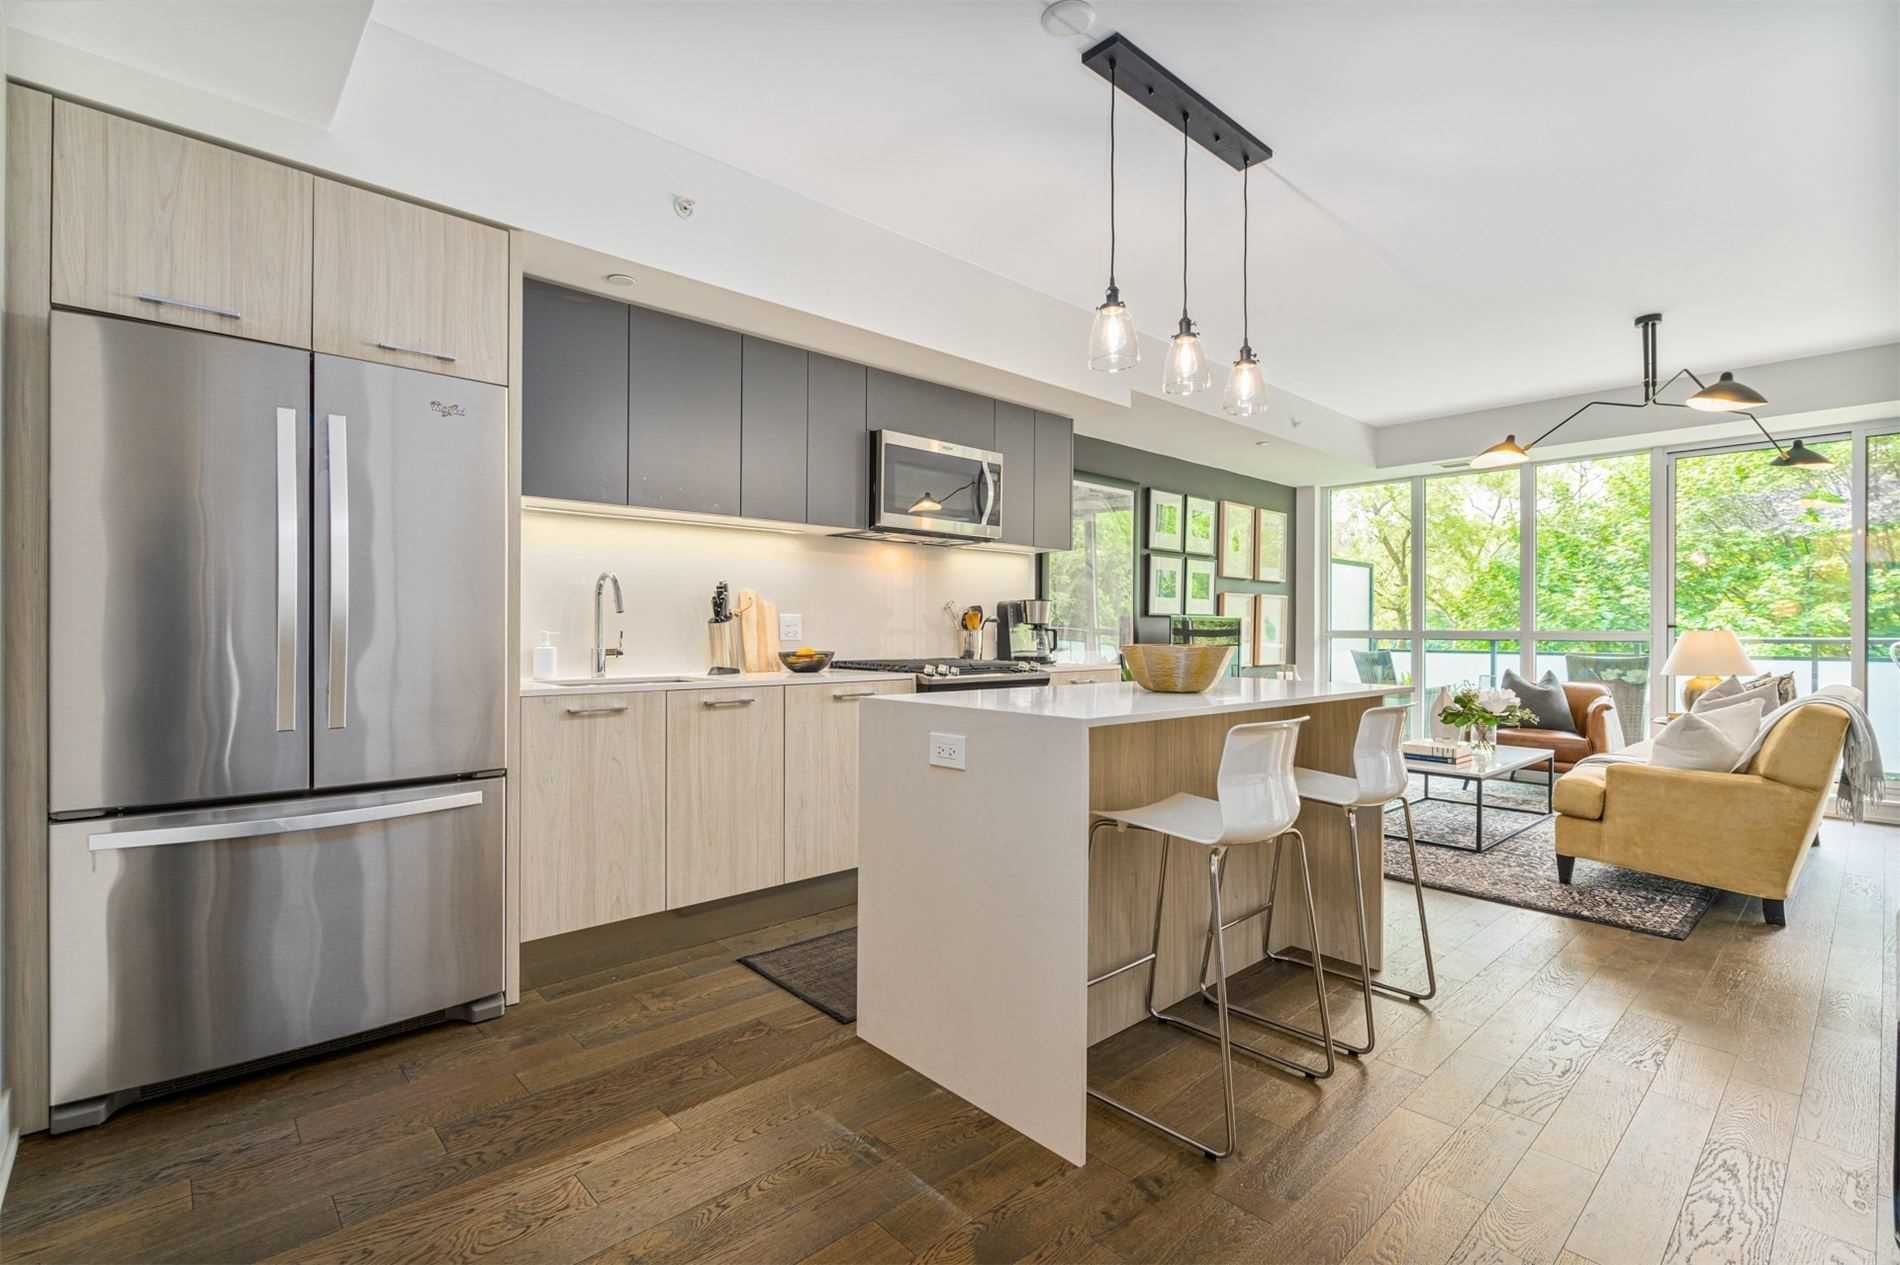 630 Kingston Rd, unit 310 for sale in Toronto - image #2